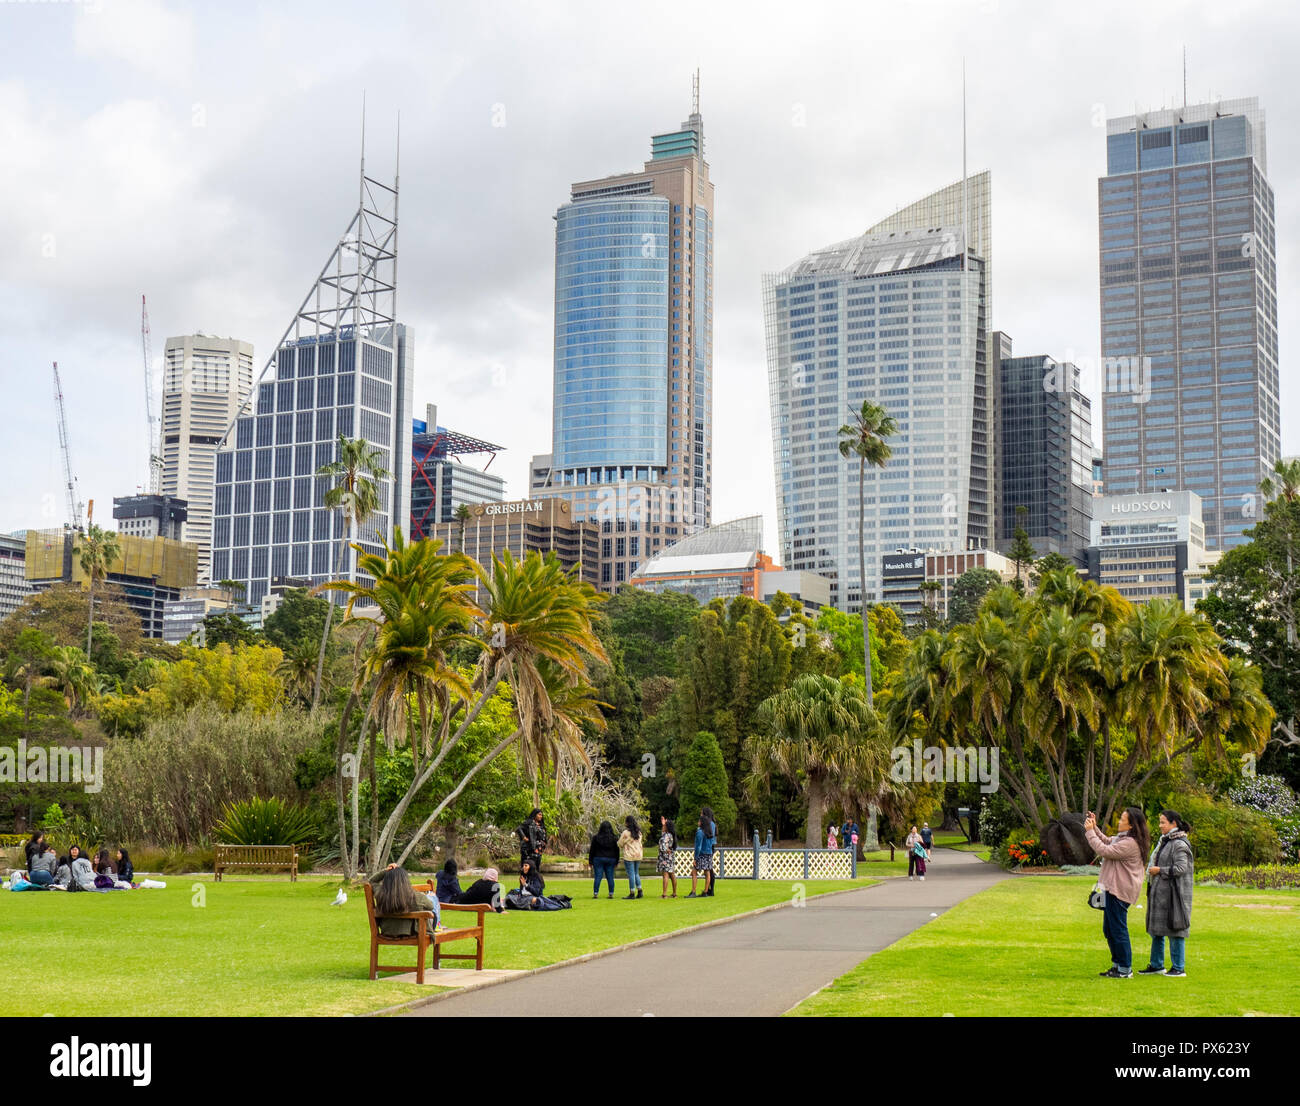 Tourists taking photographs in Royal Botanical Garden and office towers and skyscrapers of CBD Sydney NSW Australia. - Stock Image